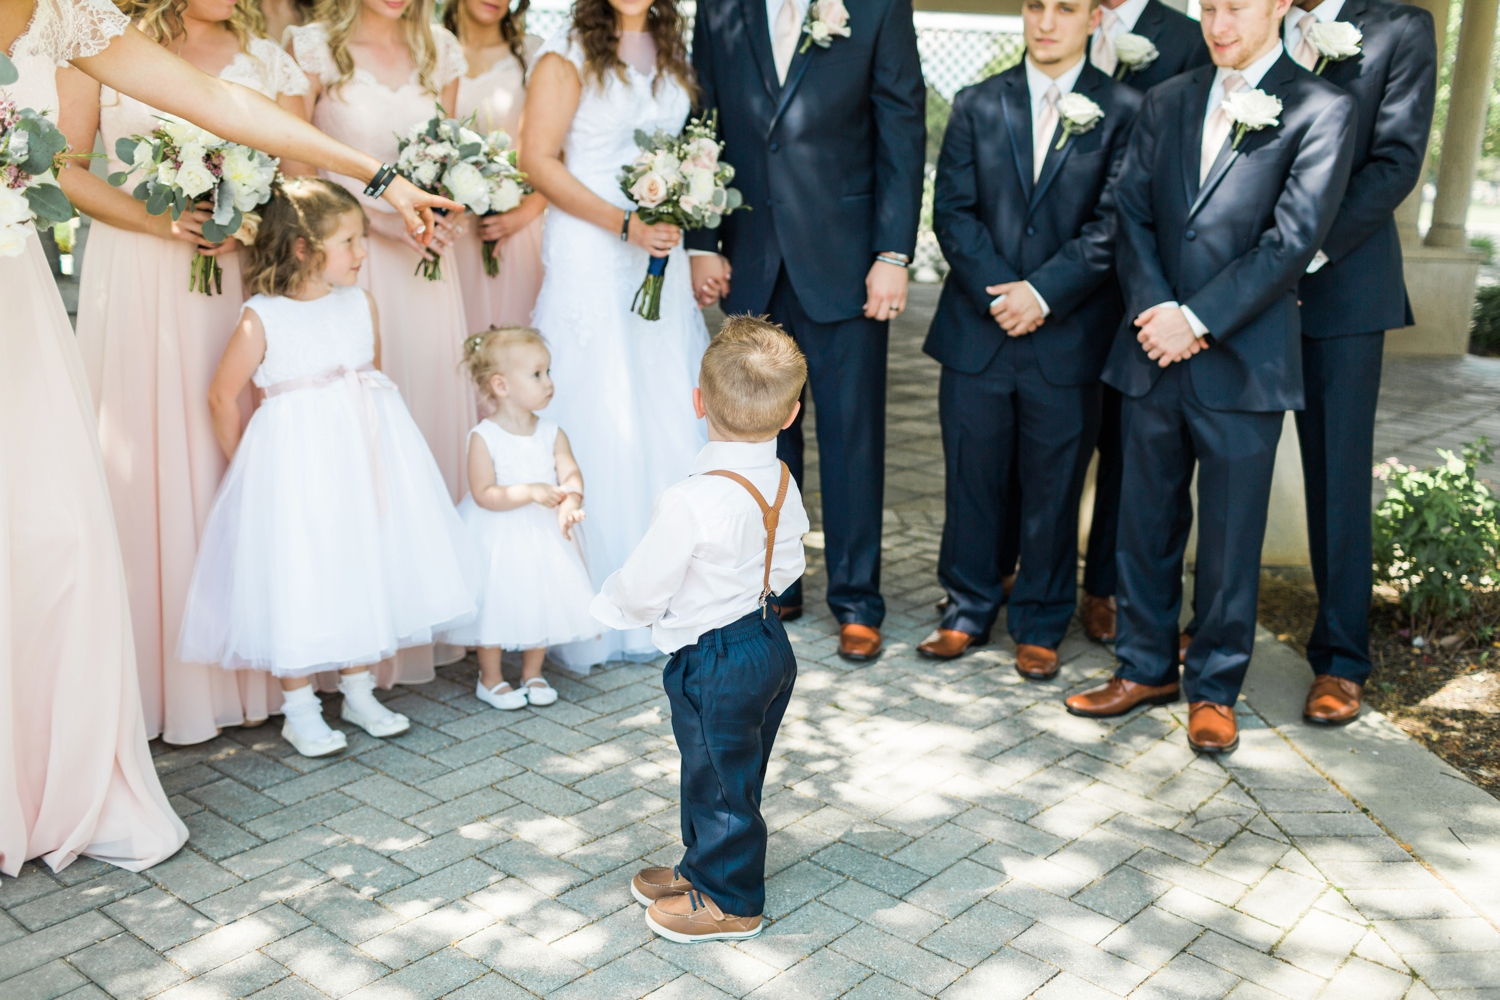 Community_Life_Center_Indianapolis_Indiana_Wedding_Photographer_Chloe_Luka_Photography_6910.jpg